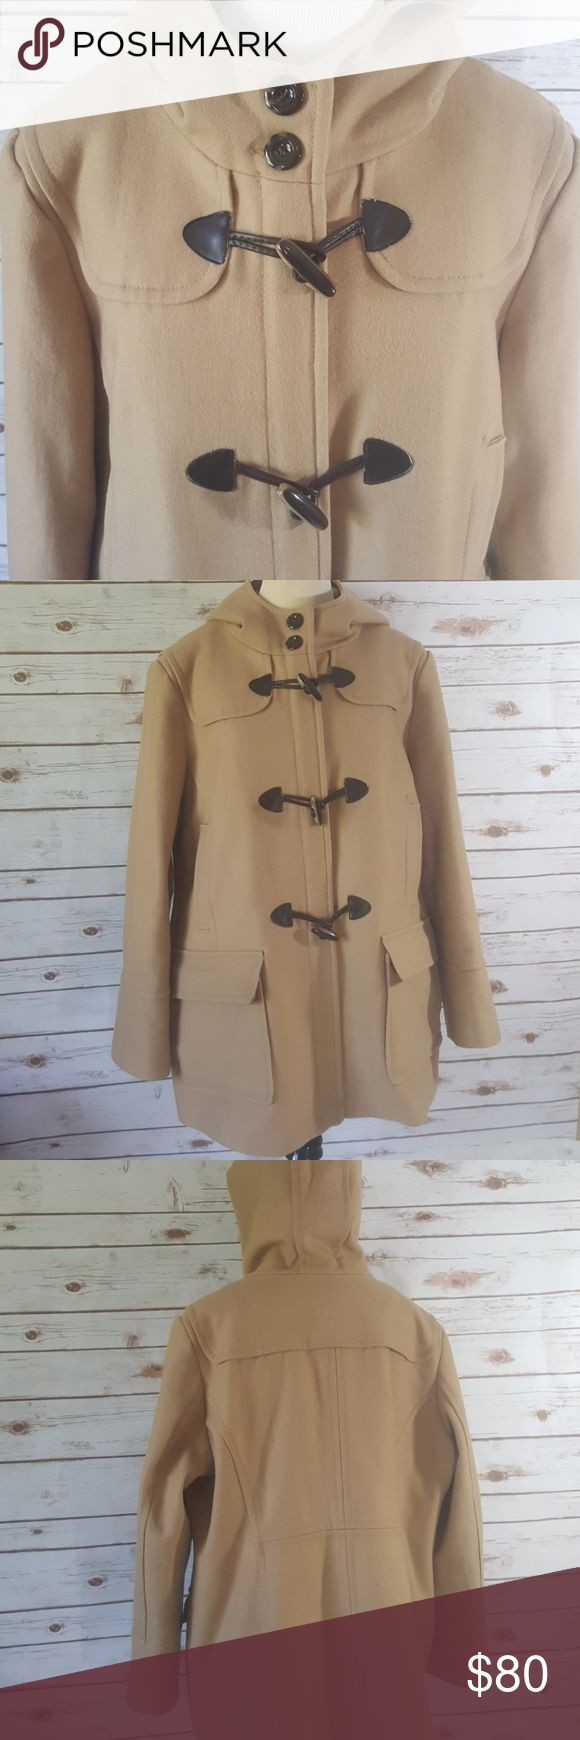 """St. John's Bay wool cashmere blend winter coat St John's Bay women's plus size coat. Underarm to underarm measurement is 26"""". Length is 31"""" from top of shoulder to hem of coat. Zips up the front with three toggle button closures. Four front pockets. Lining intact. Zipper intact. In excellent condition. Size 2X. Made in China. Shell is 70% wool, 20% nylon 10% cashmere. Lining 100% polyester. Hood lining 100% acrylic. Camel / tan in color. Smoke-free pet-free. St. John's Bay Jackets & Coats"""